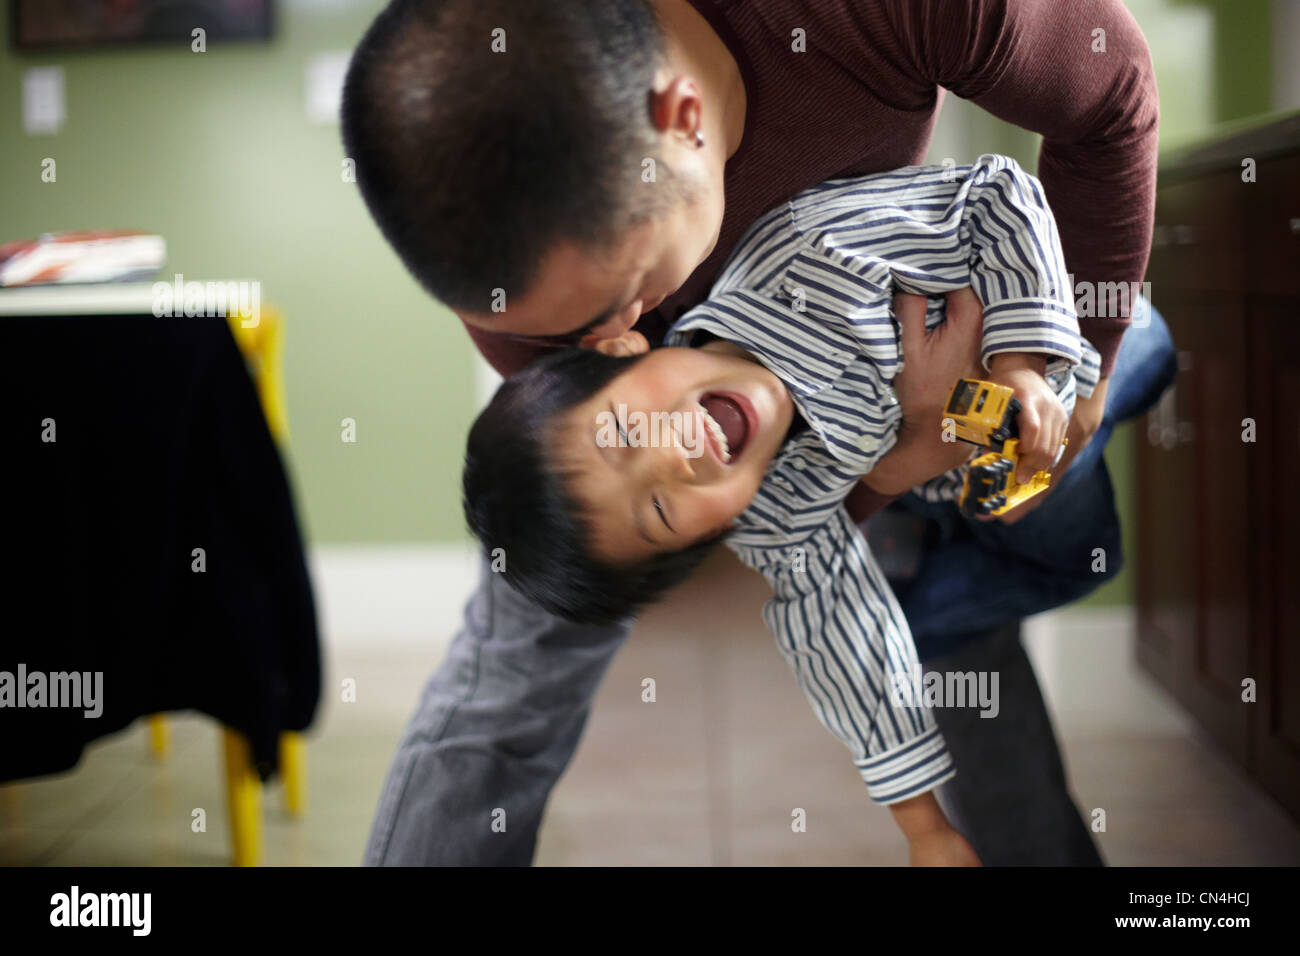 Man and boy playing - Stock Image